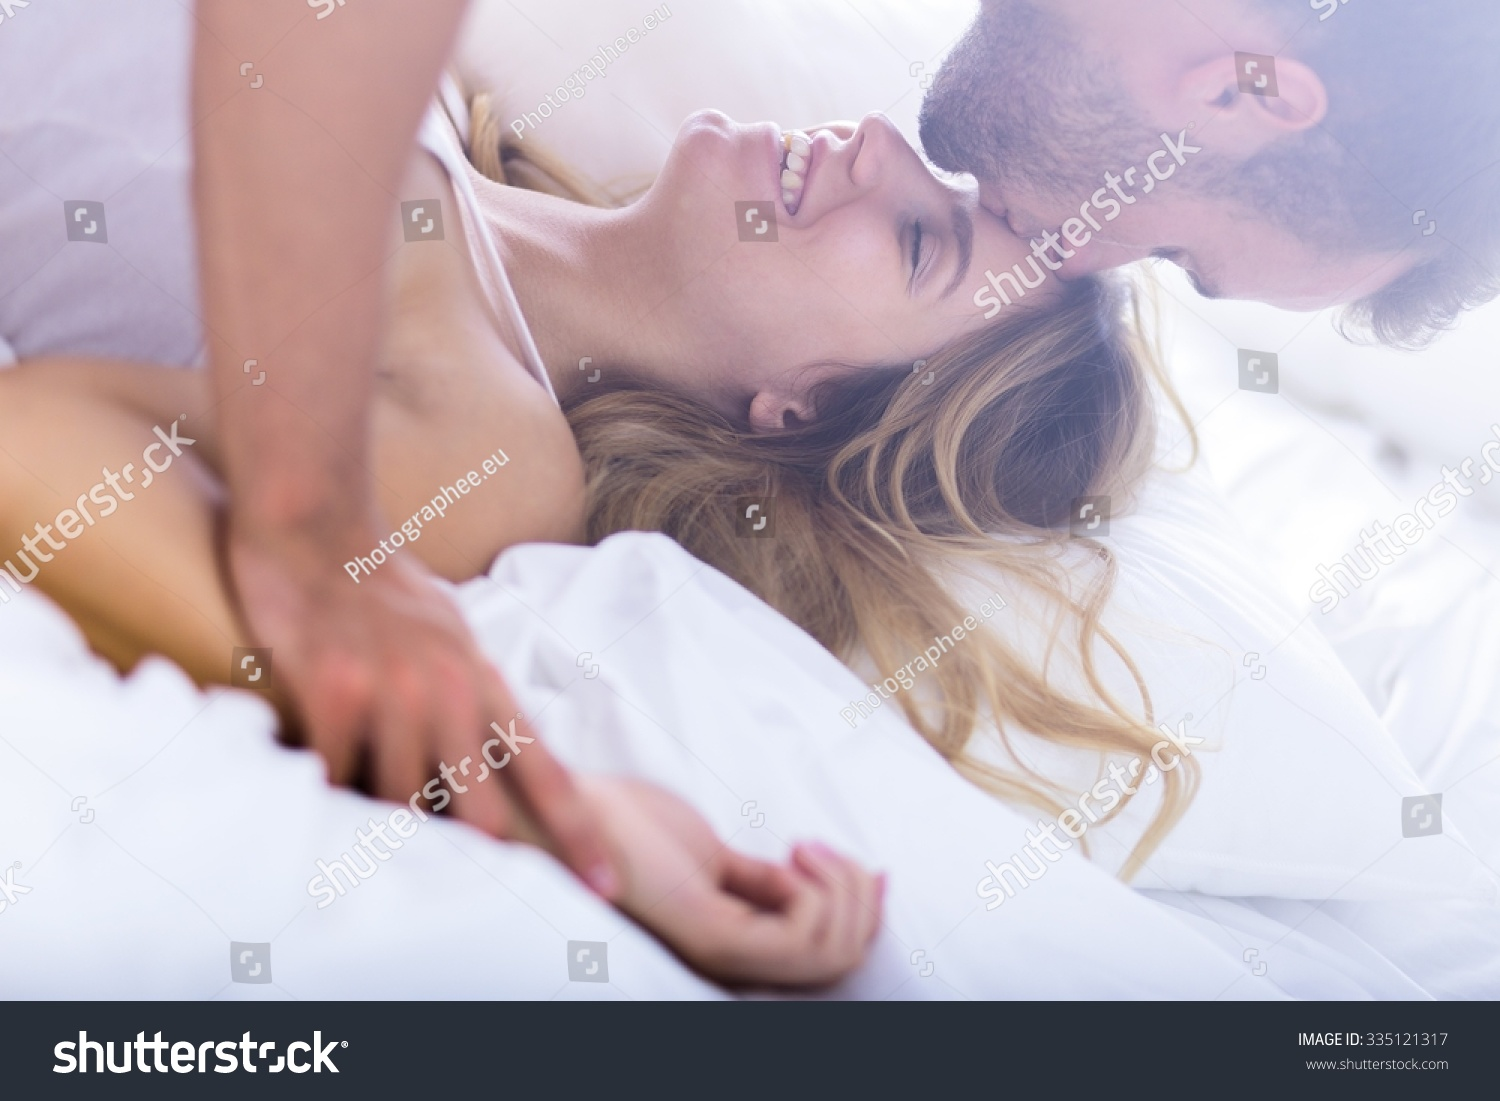 Real Couple Romantic Sex